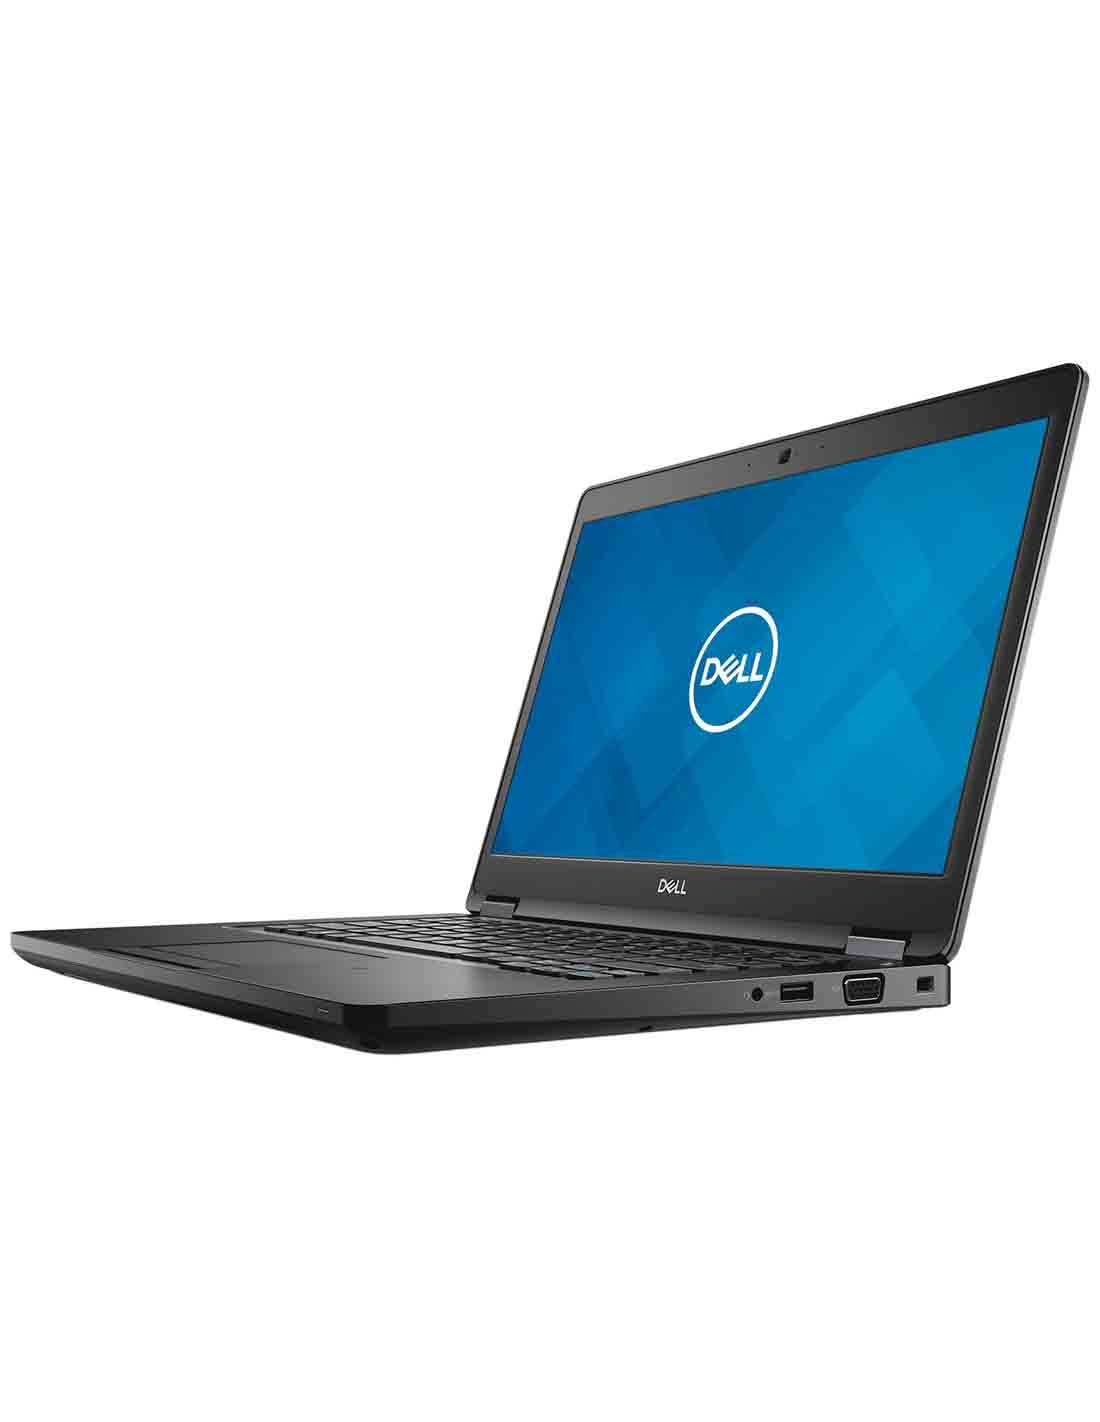 Dell Latitude 5490 Laptop i7 images and photos in Dubai computer store